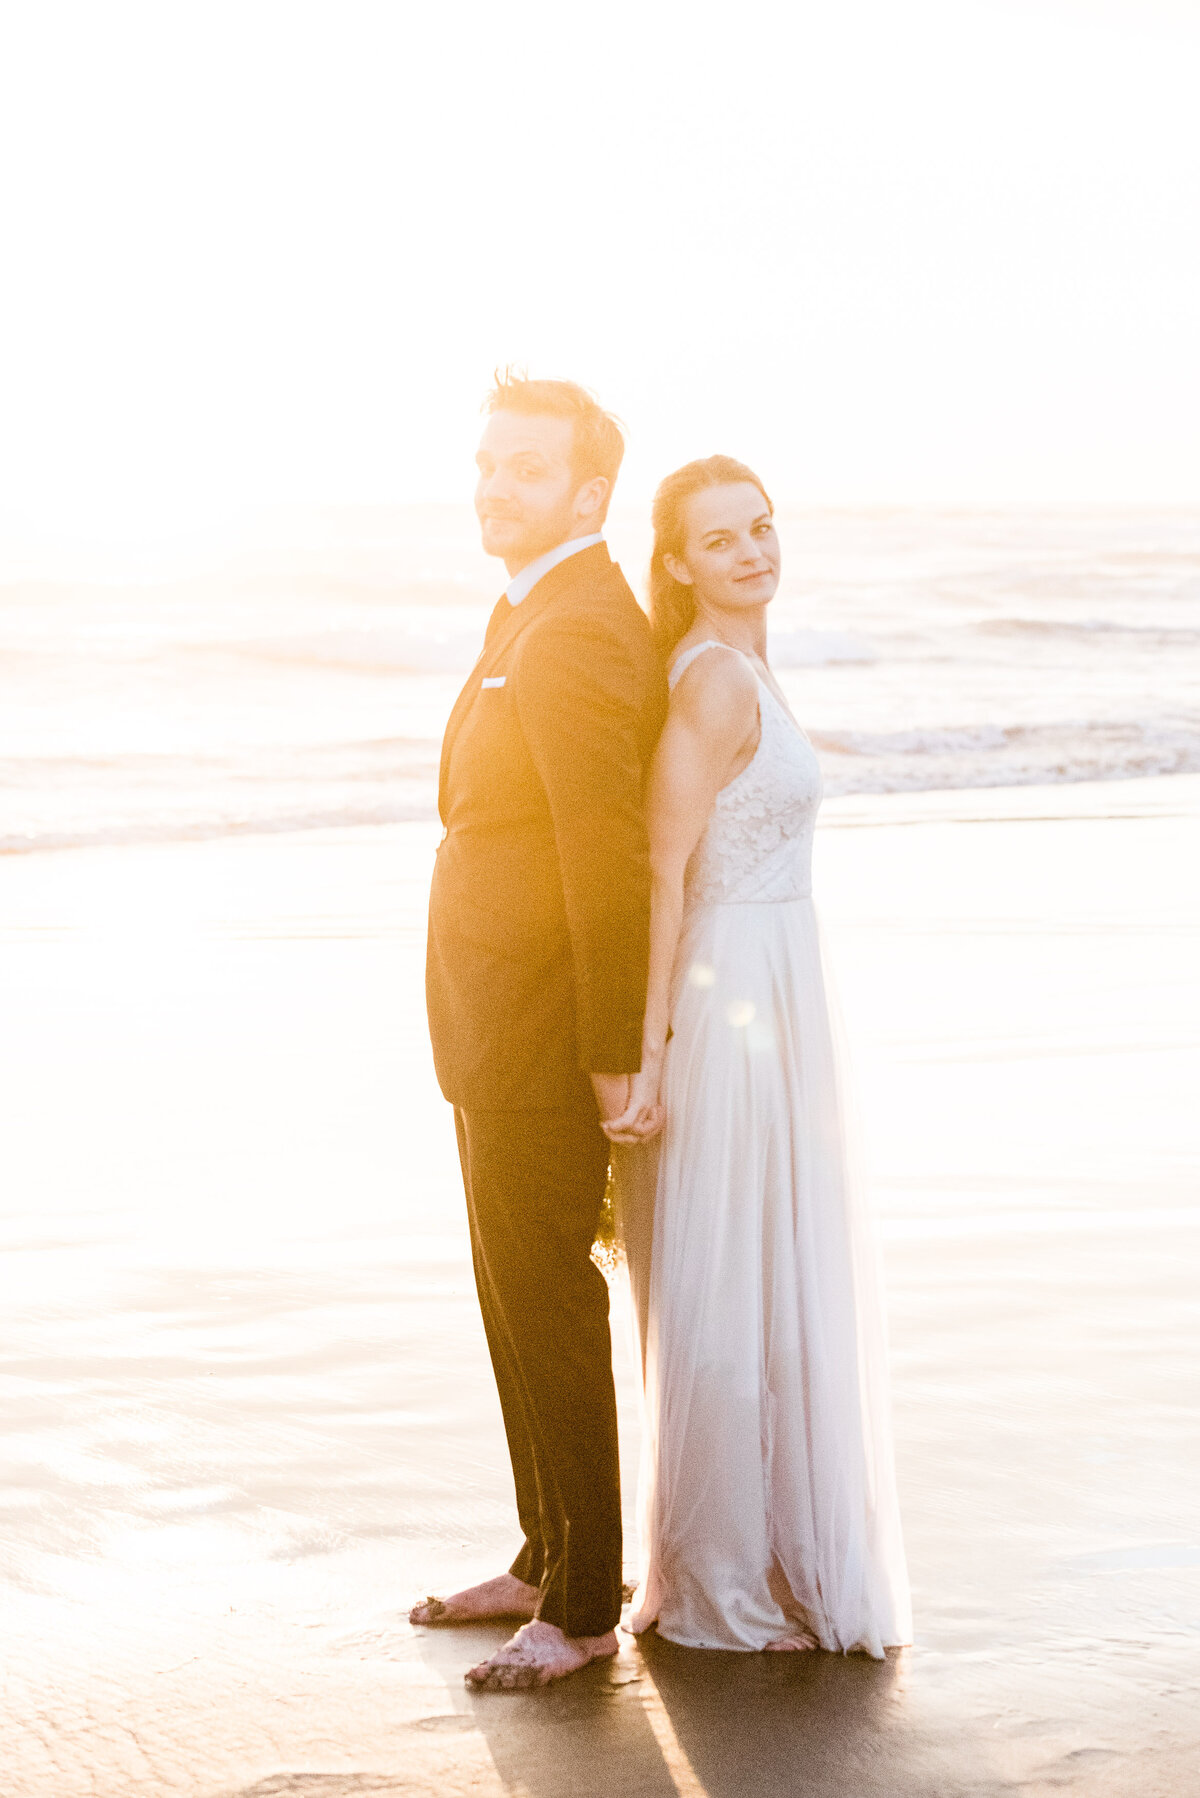 Cannon-Beach-Elopement-Photographer-68